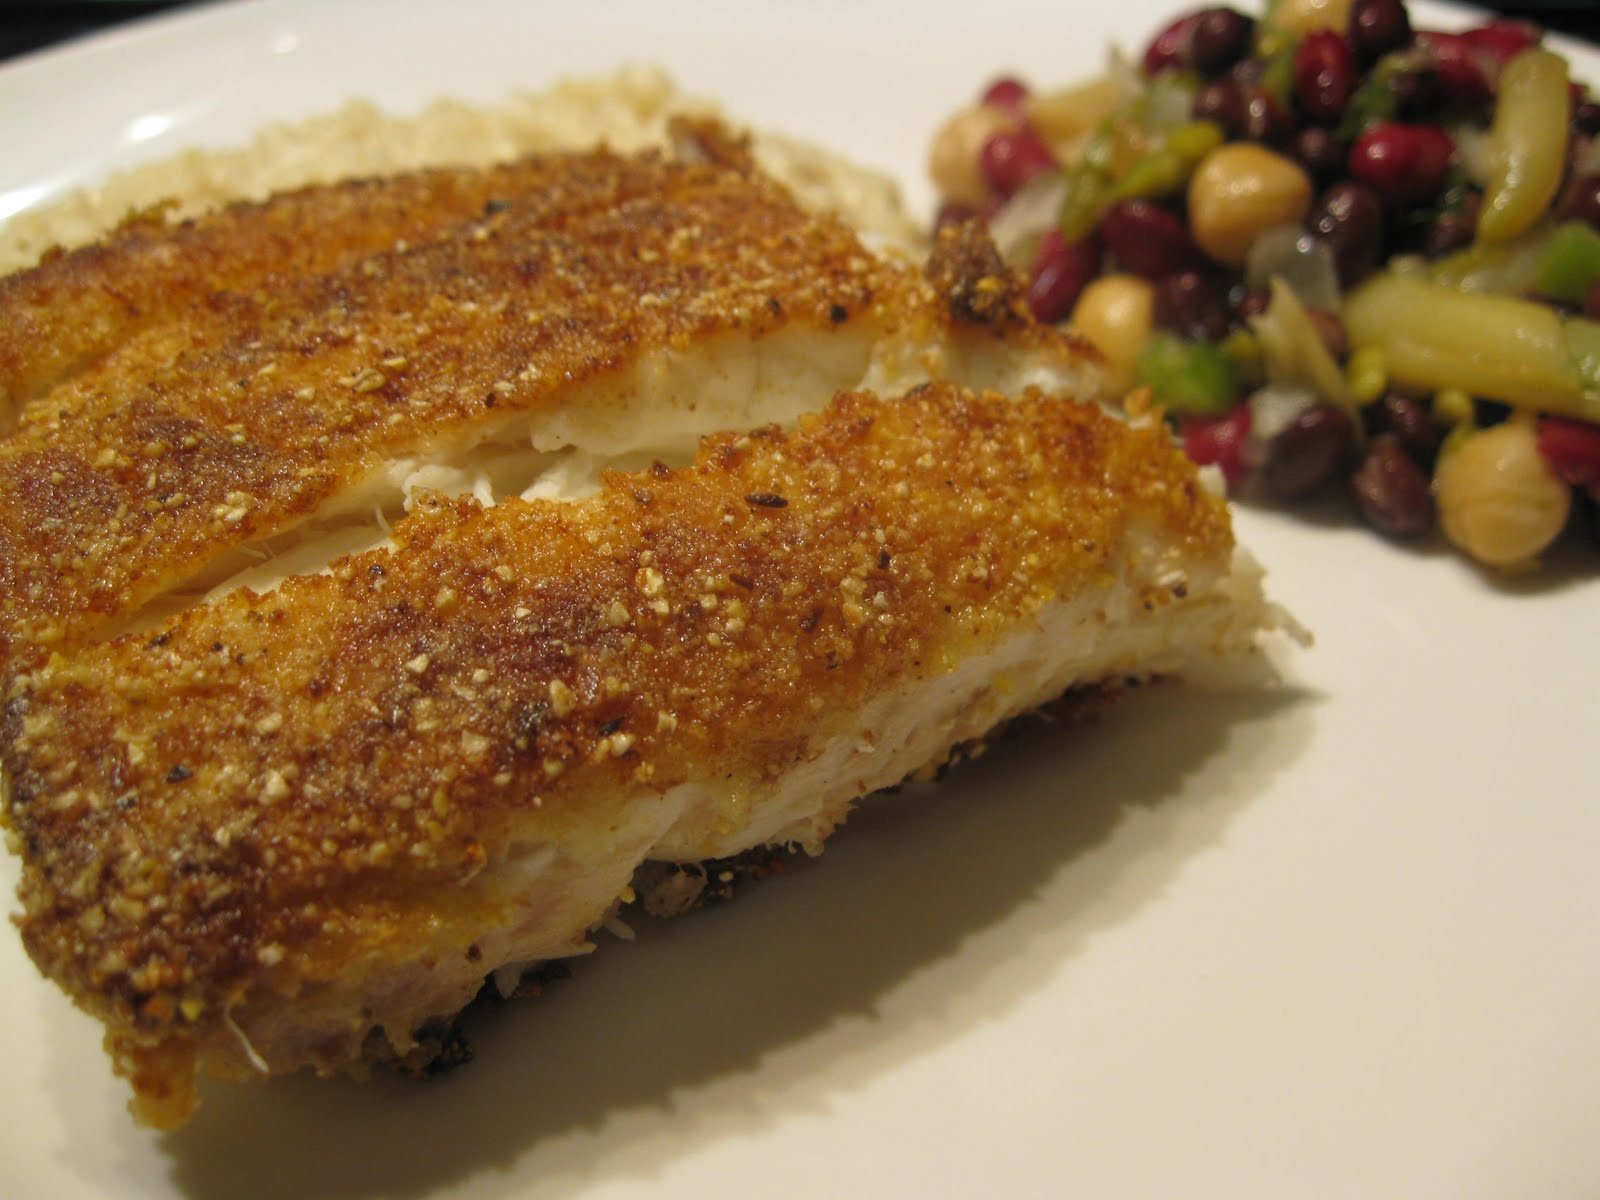 Fatback and foie gras golden cornmeal crusted quick fry for Cornmeal fried fish